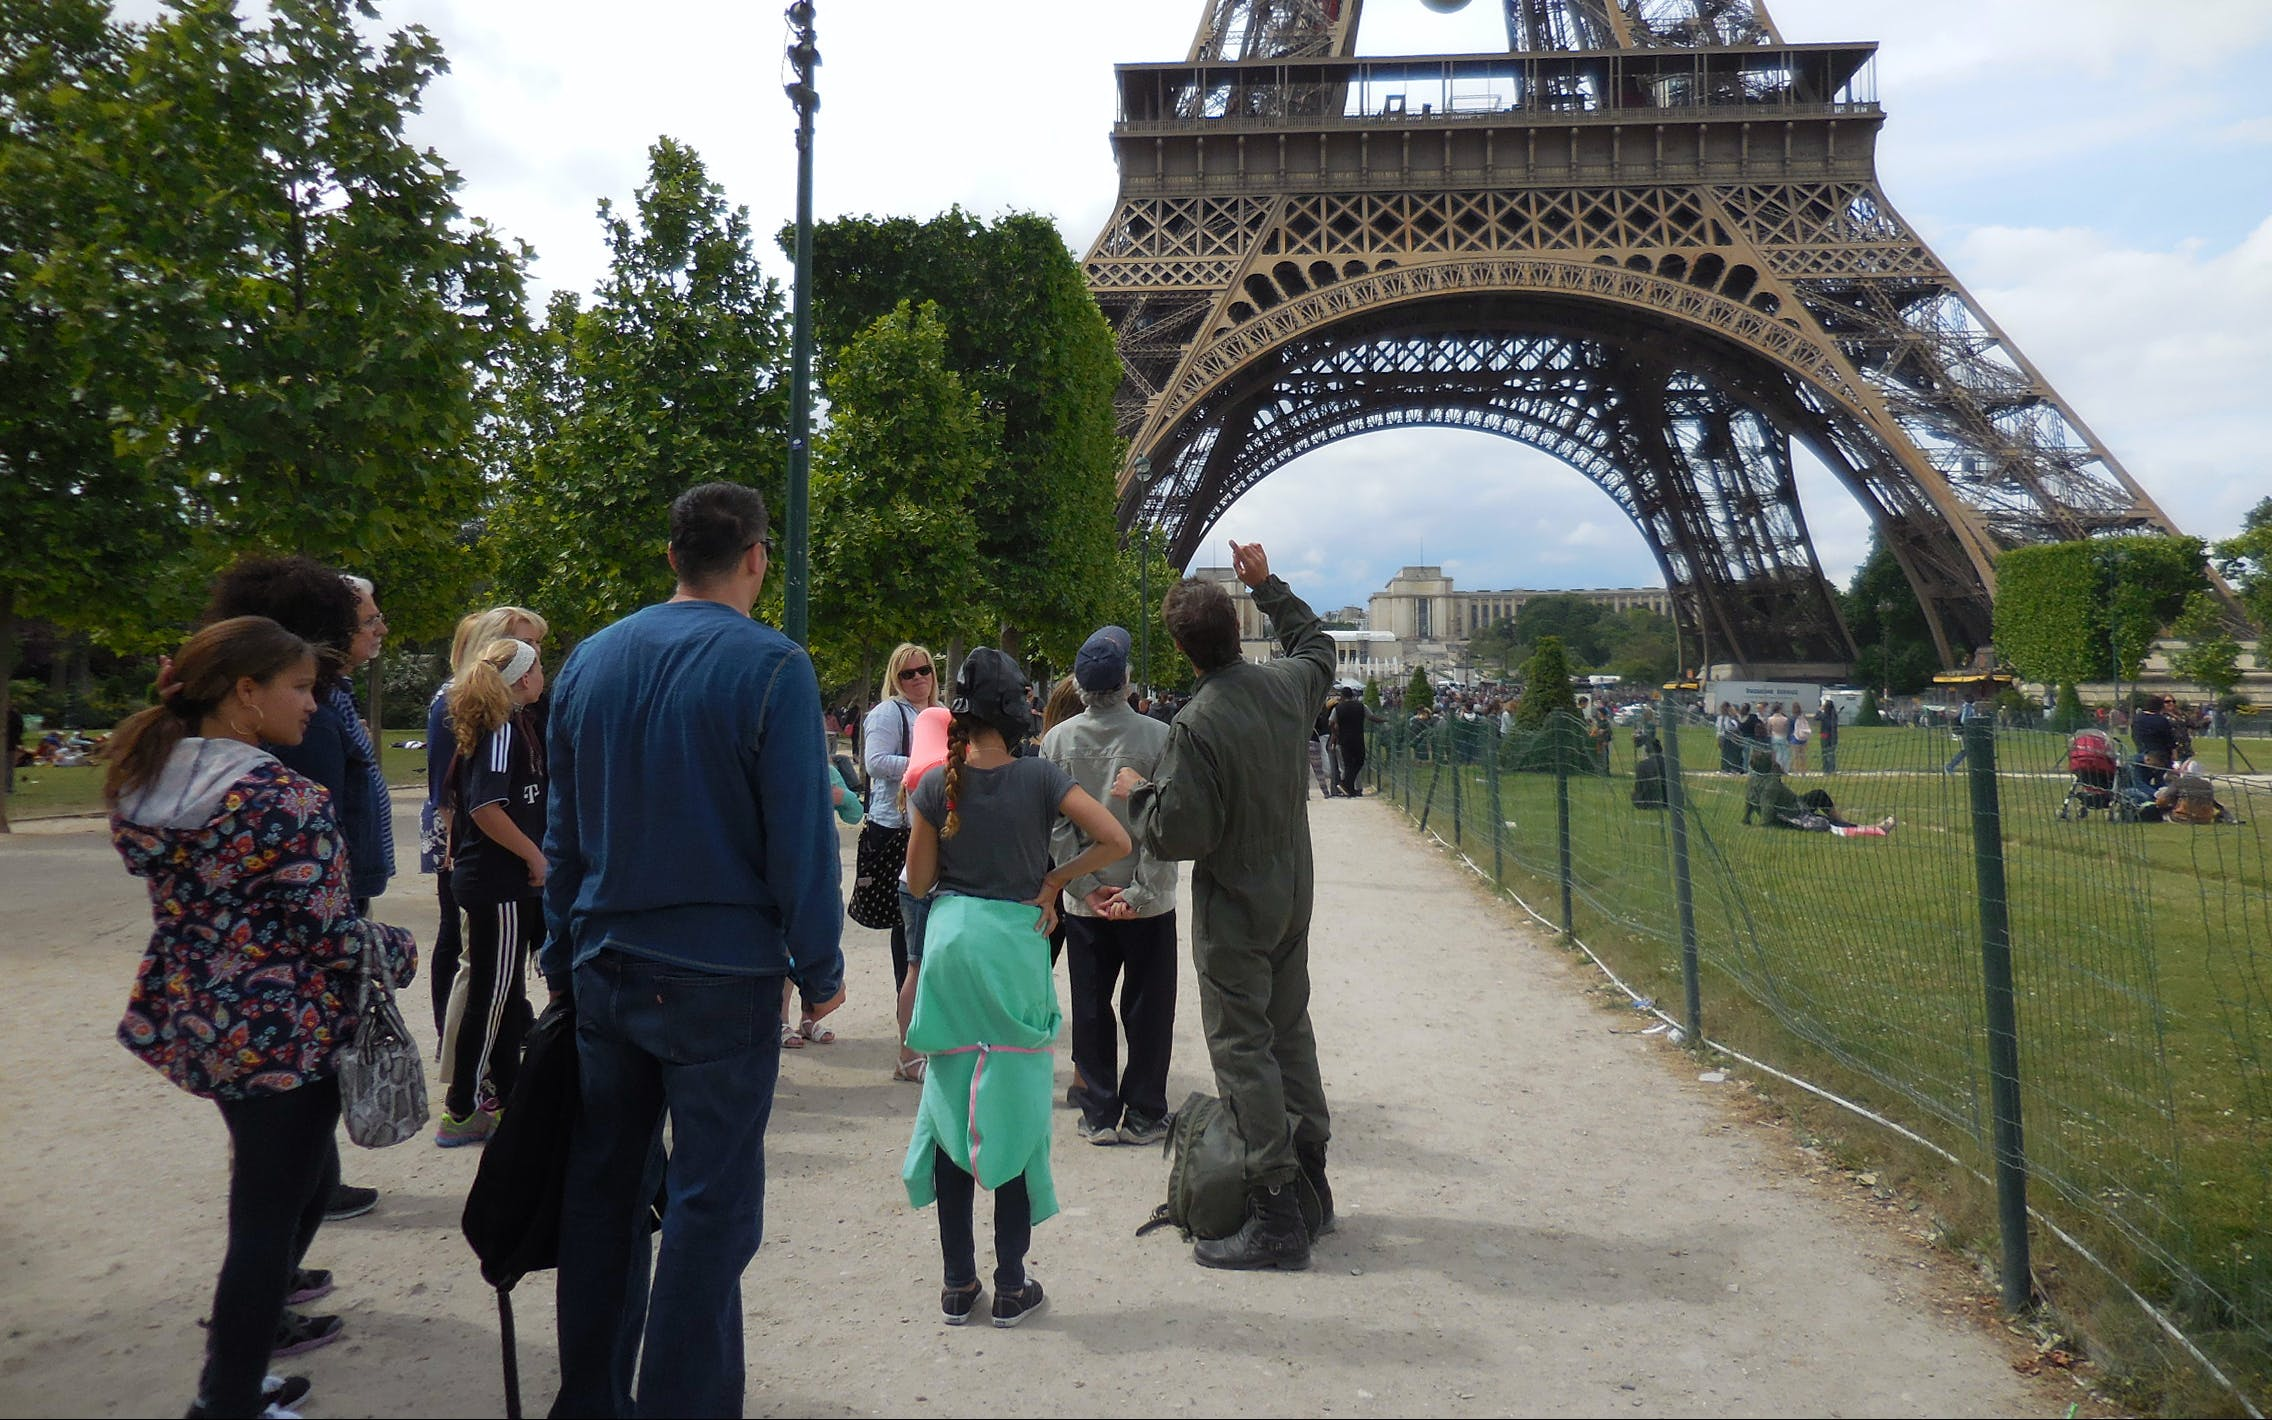 Eiffel Tower Skip-the-Line Access + Seine Cruise +  Montmartre Tour